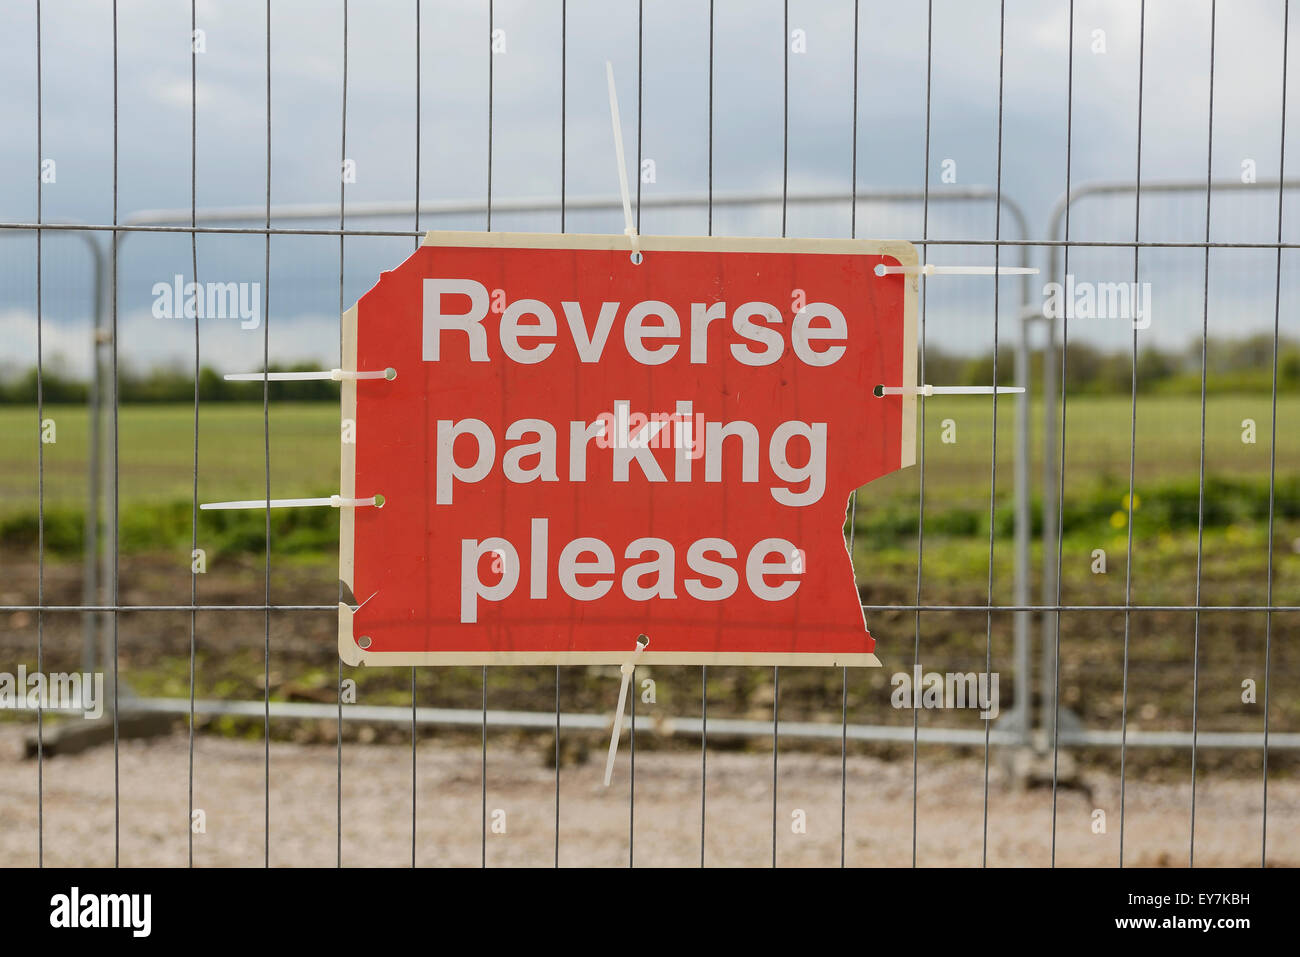 Reverse Parking Please sign attached to a fence - Stock Image